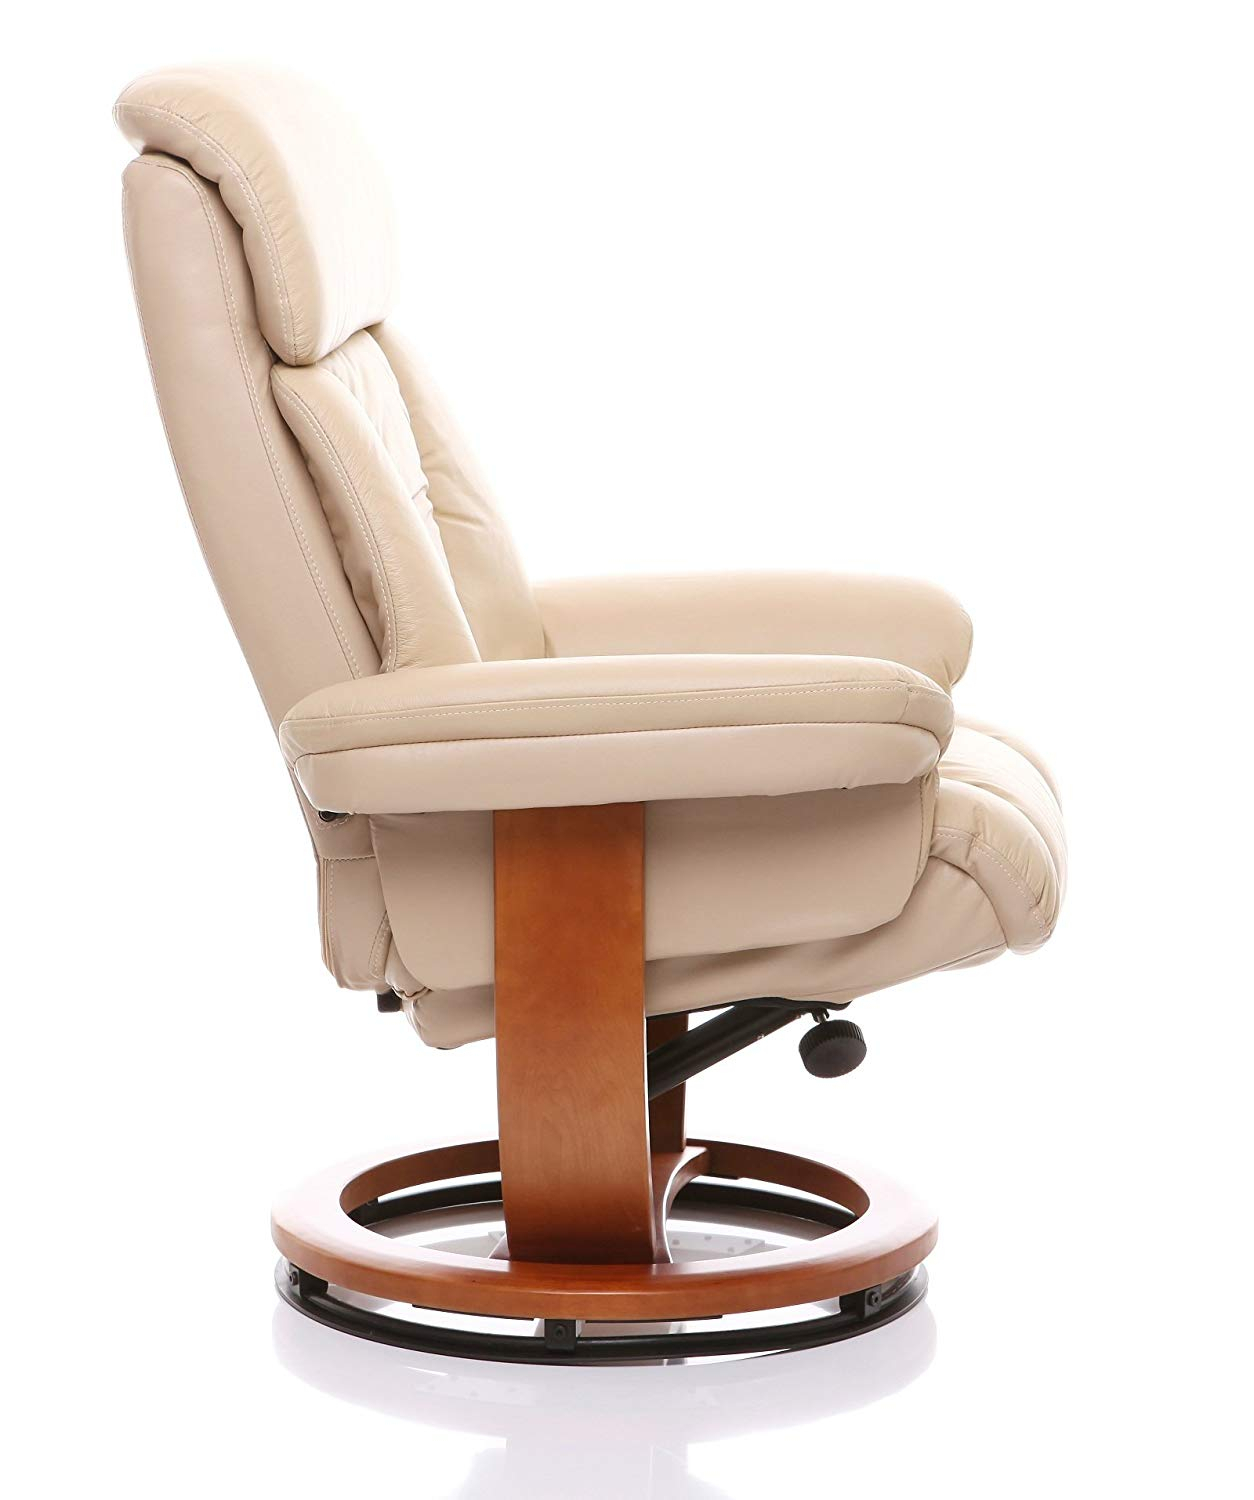 Gfa The Saigon Genuine Leather Recliner Swivel Chair Matching With Regard To Amala Bone Leather Reclining Swivel Chairs (View 20 of 20)